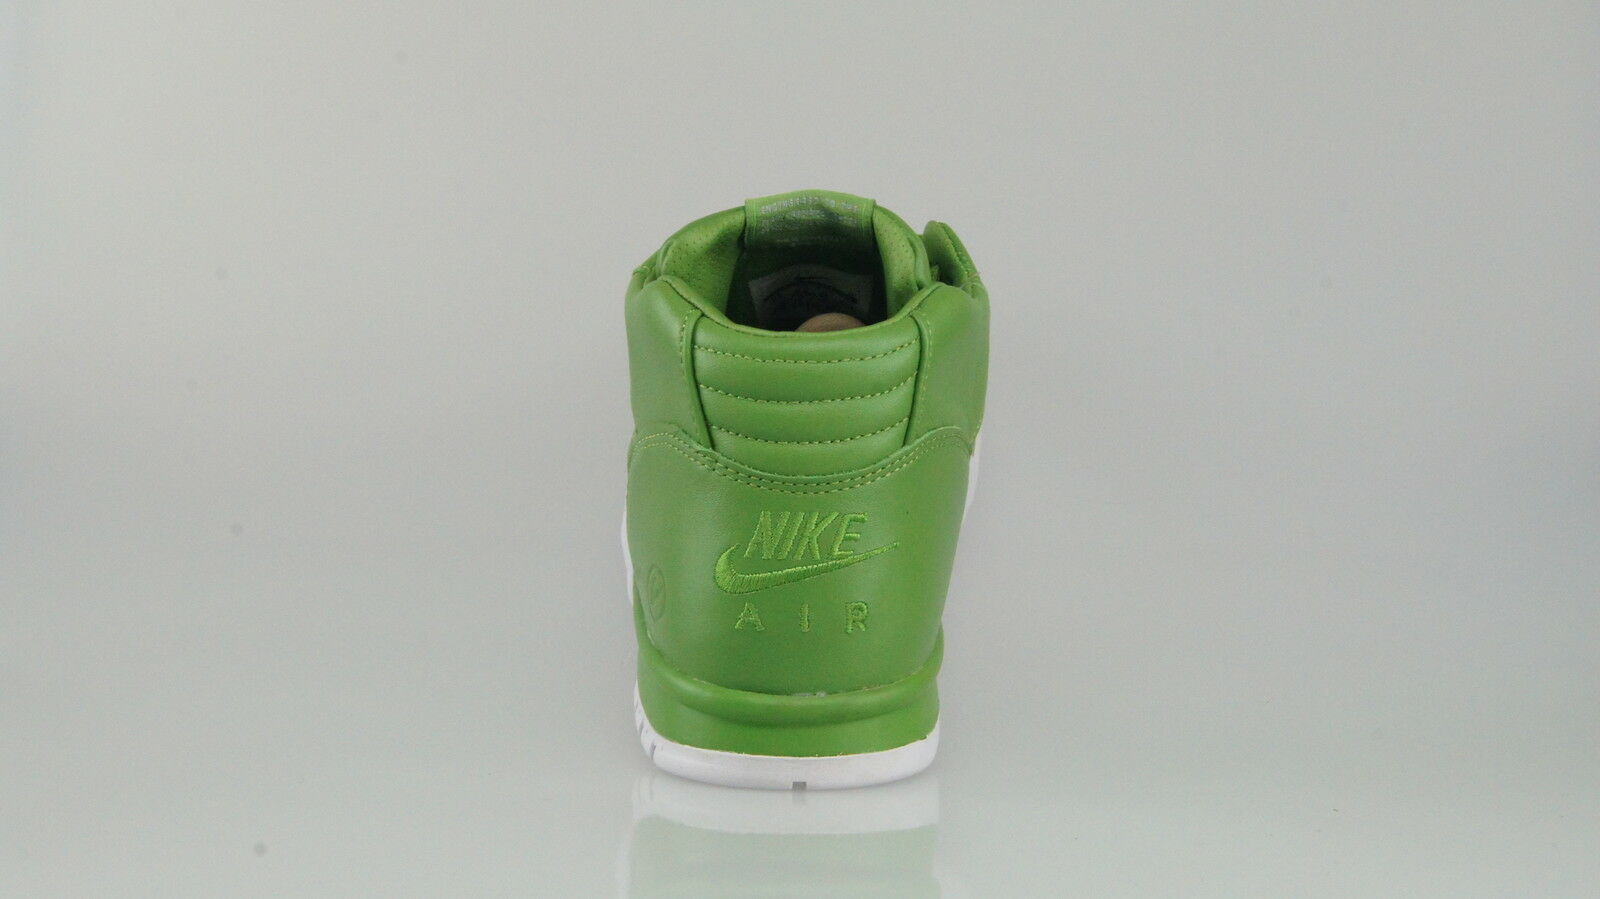 NIKE AIR TRAINER 1 MID SP FRAGMENT FRAGMENT FRAGMENT Size 44 (10US) c9e2c9